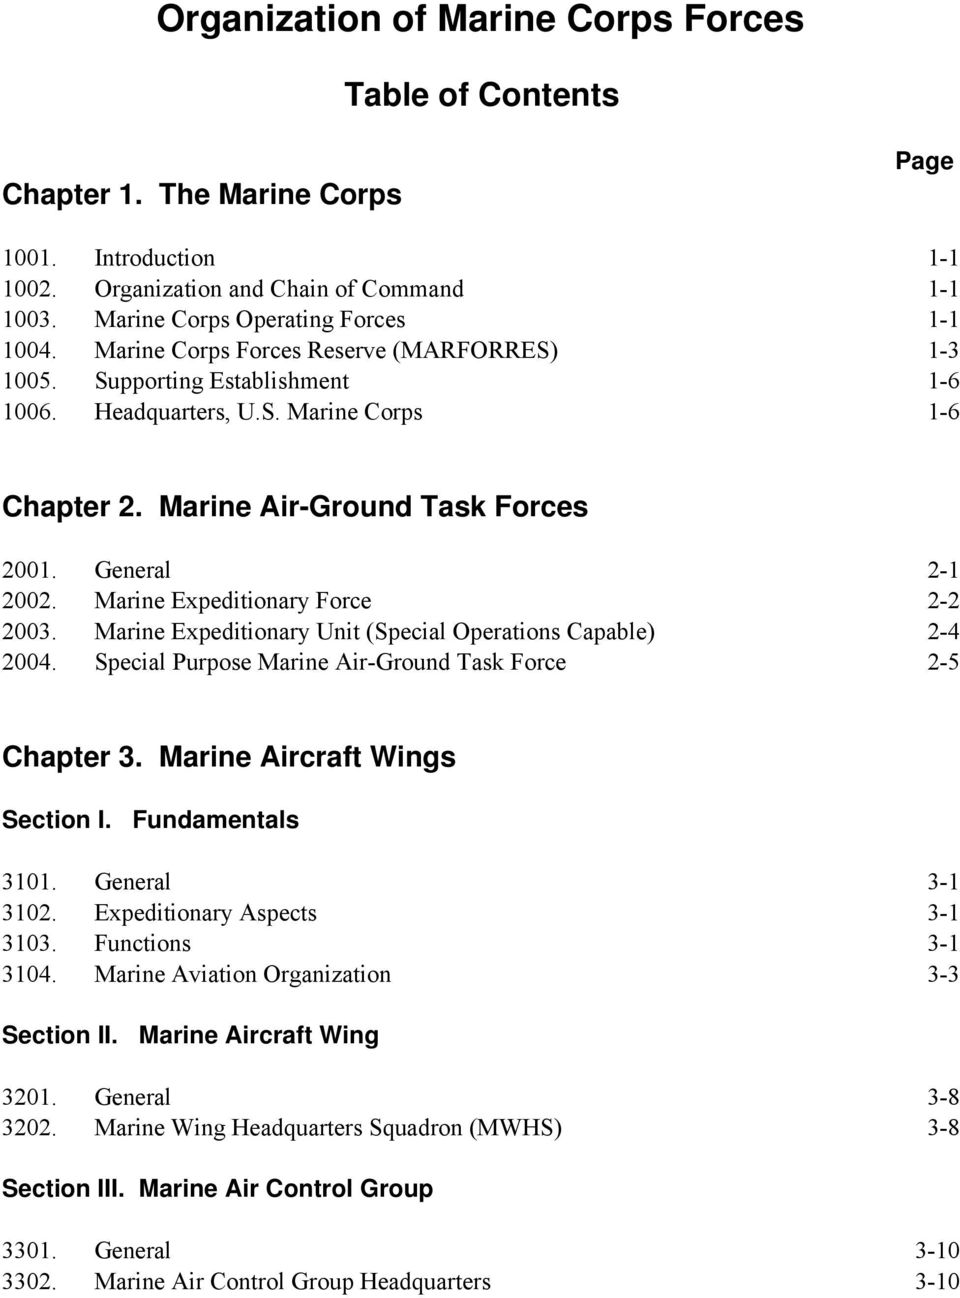 Marine Expeditionary Force 2-2 2003. Marine Expeditionary Unit (Special Operations Capable) 2-4 2004. Special Purpose Marine Air-Ground Task Force 2-5 Chapter 3. Marine Aircraft Wings Section I.